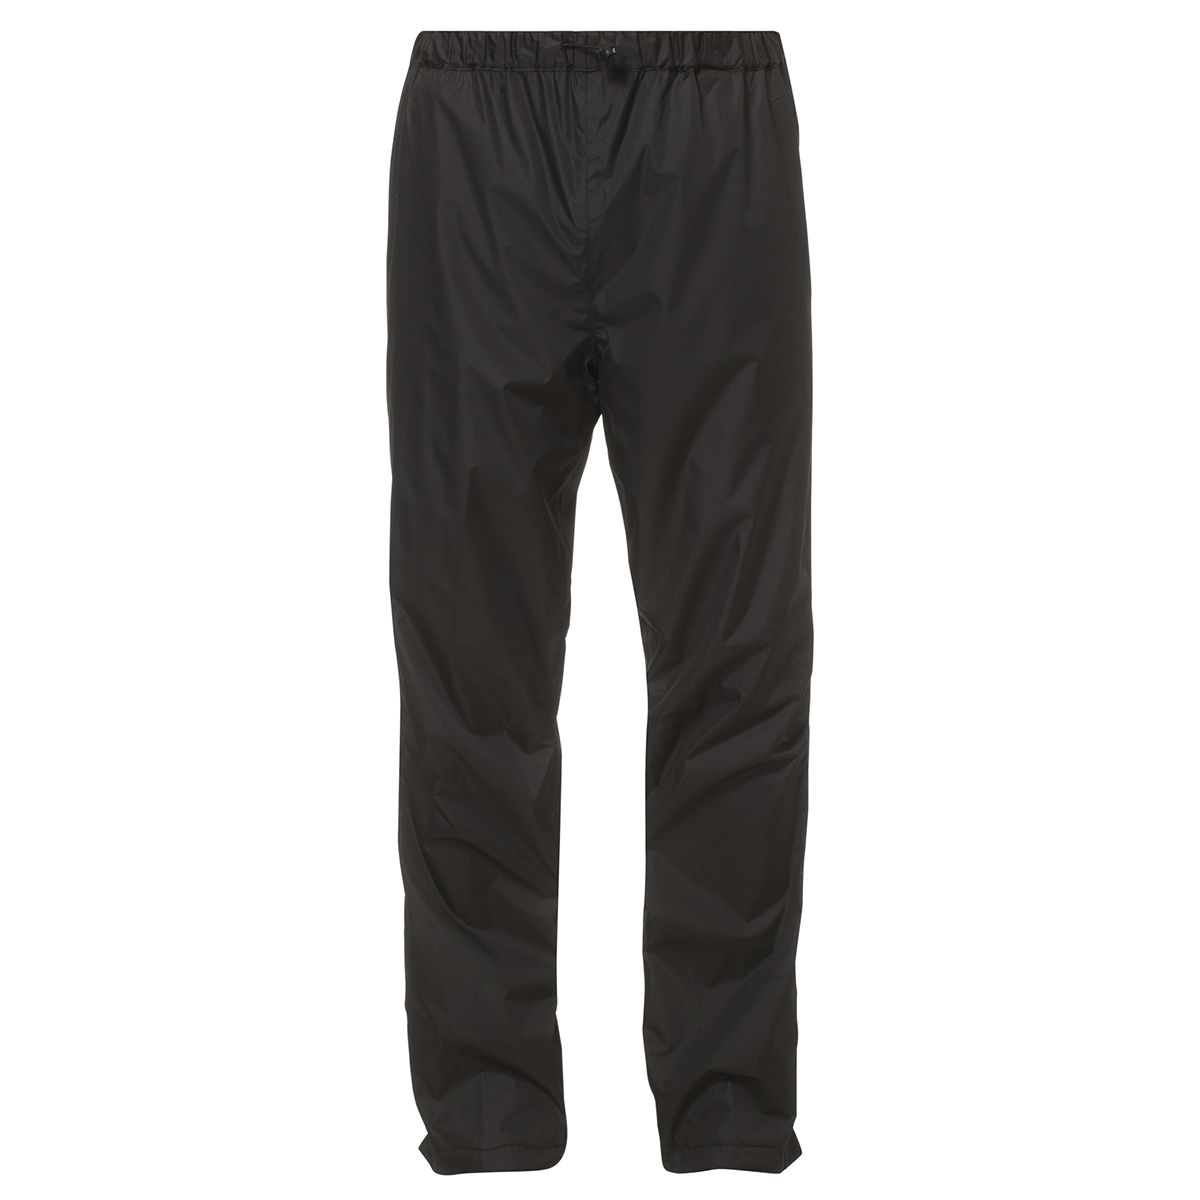 FLUID II waterproof trousers